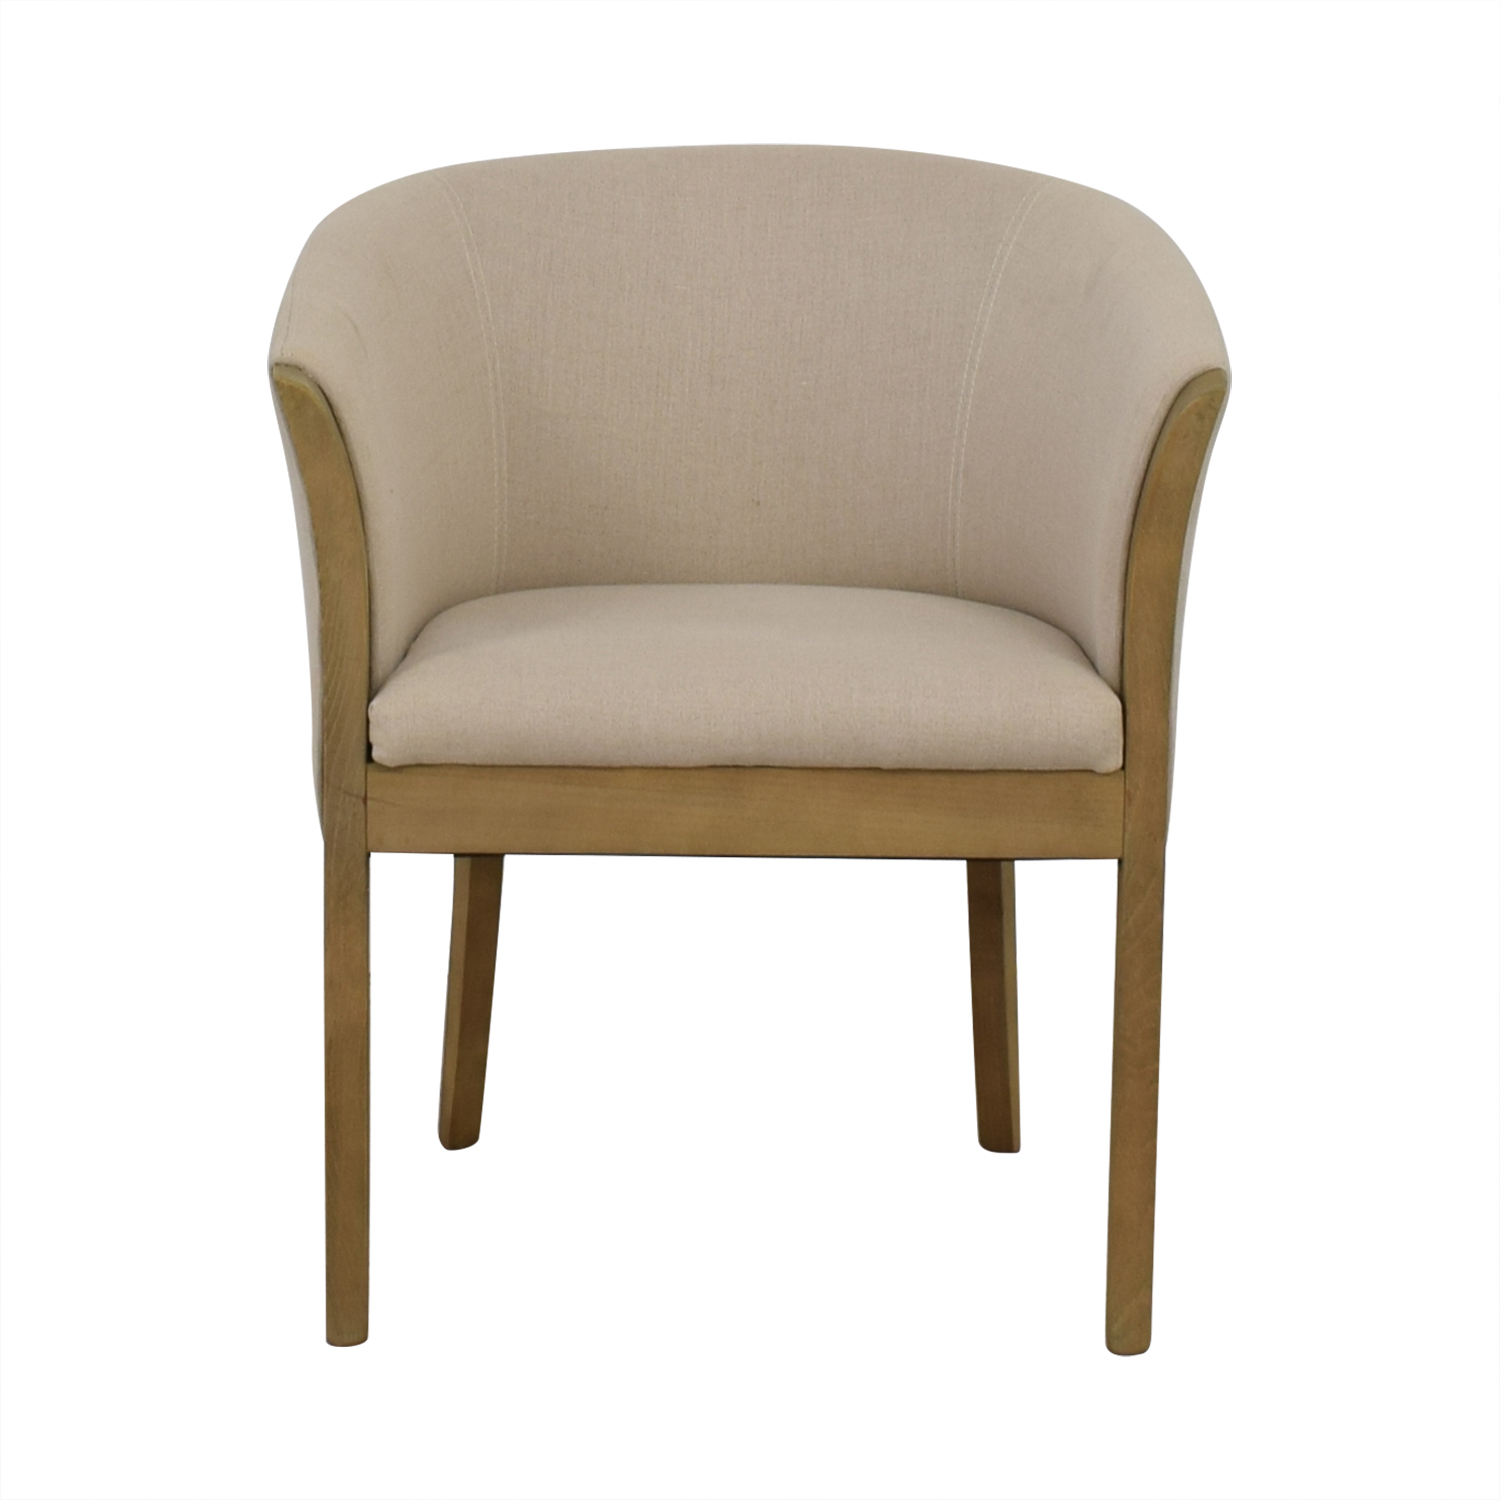 shop One Kings Lane Beige Accent Chair One Kings Lane Sofas